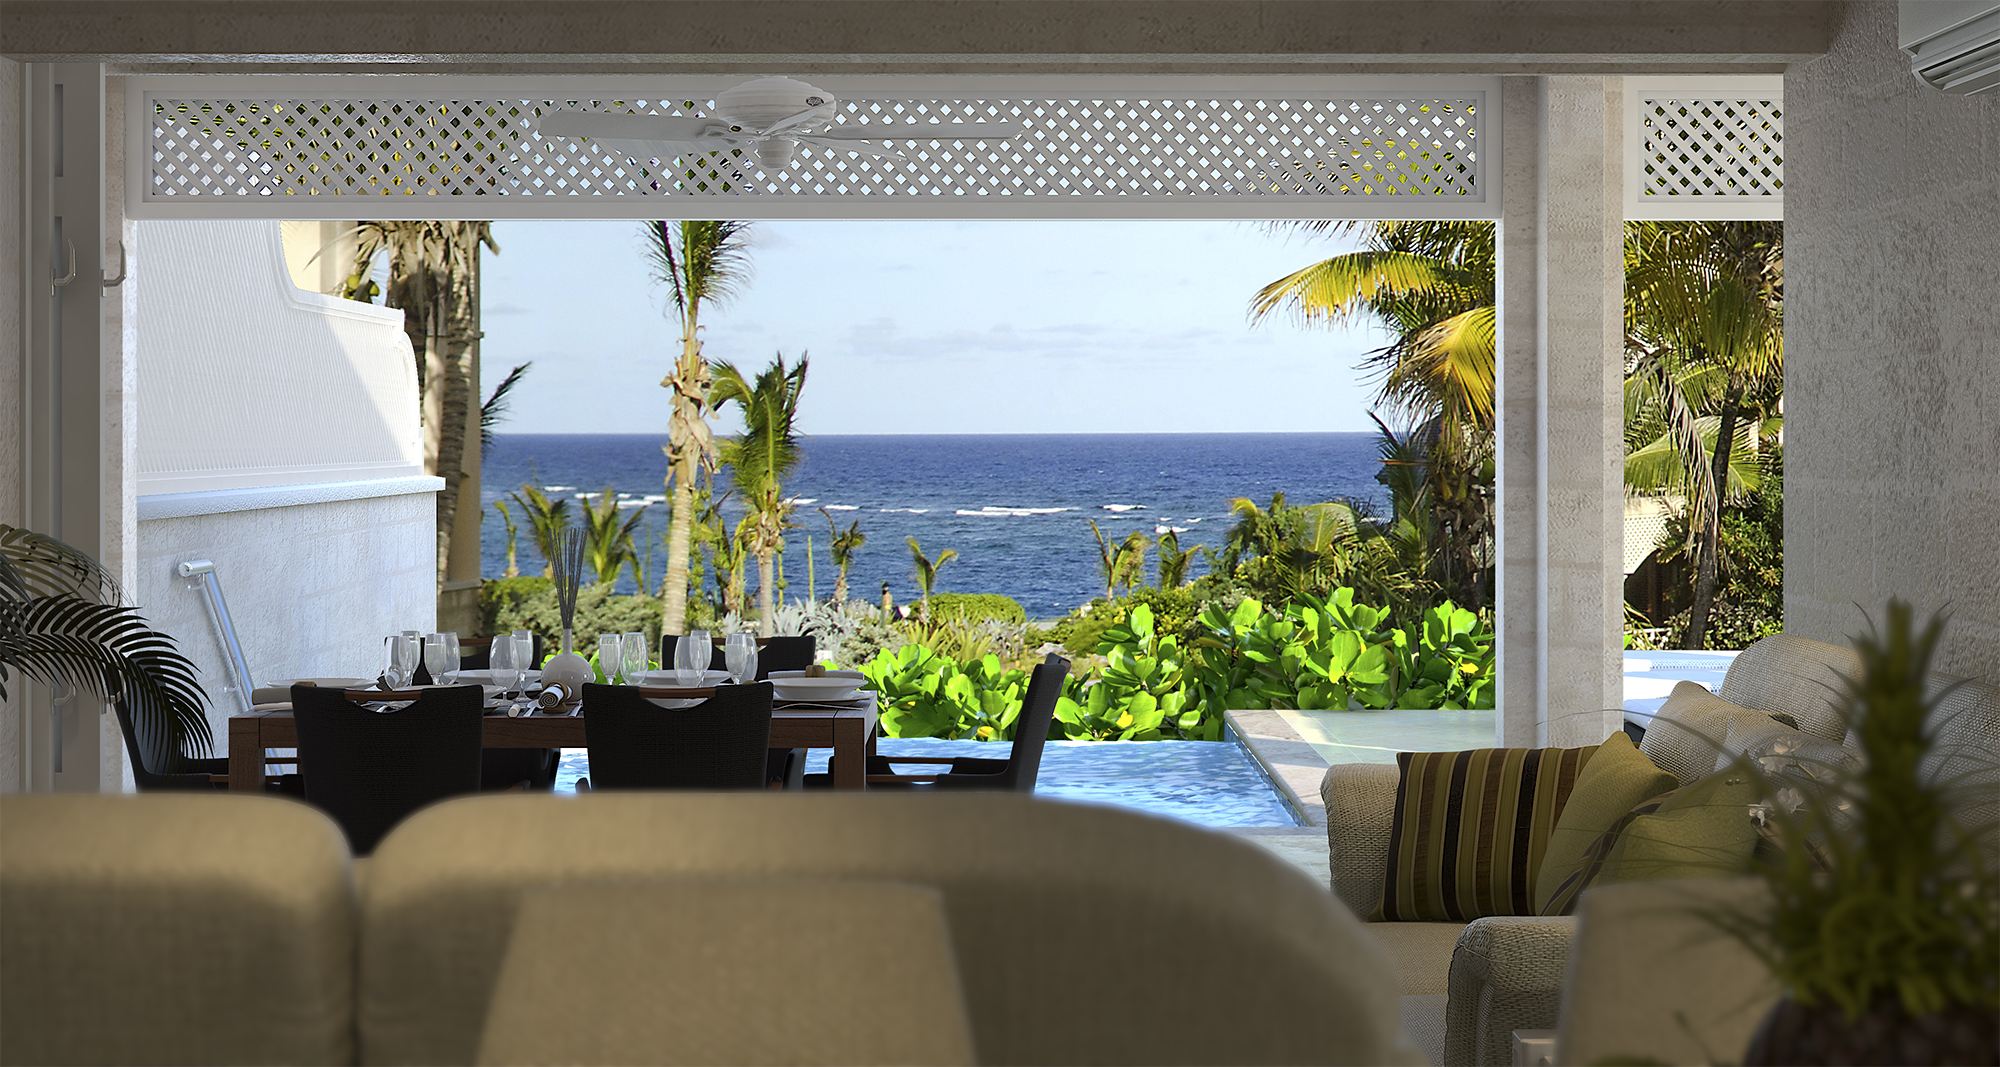 Take in the Ocean View from your Ground Floor Private Residence with private pool and gardens.